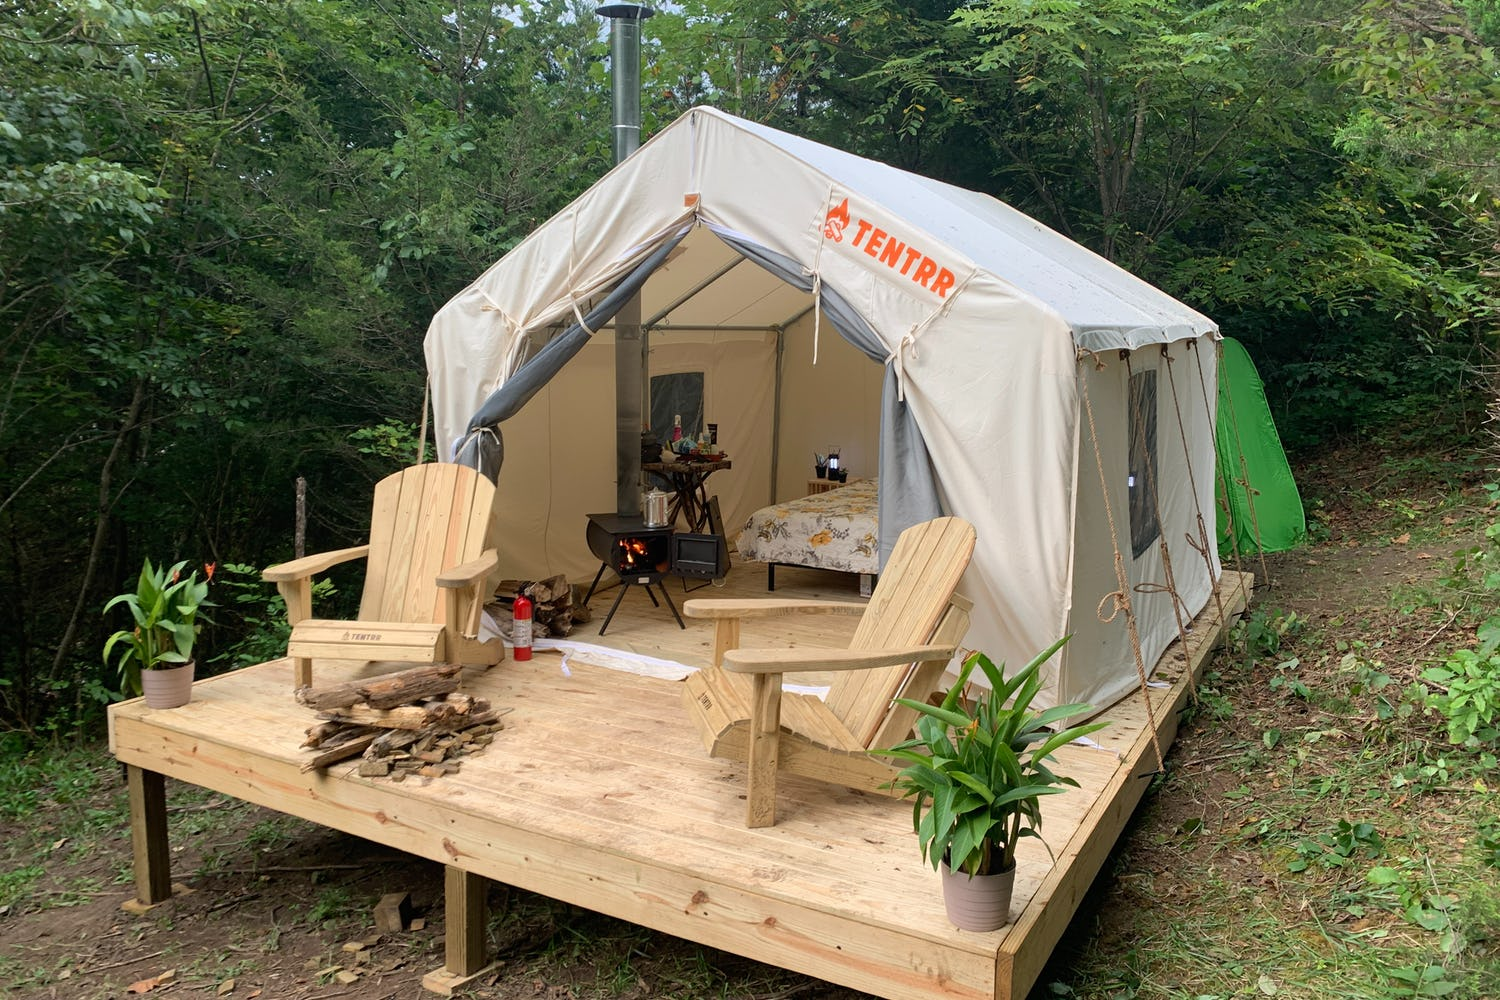 Tentrr canvas glamping platform tent with wood stove and adirondack chairs at a campsite in Virginia.